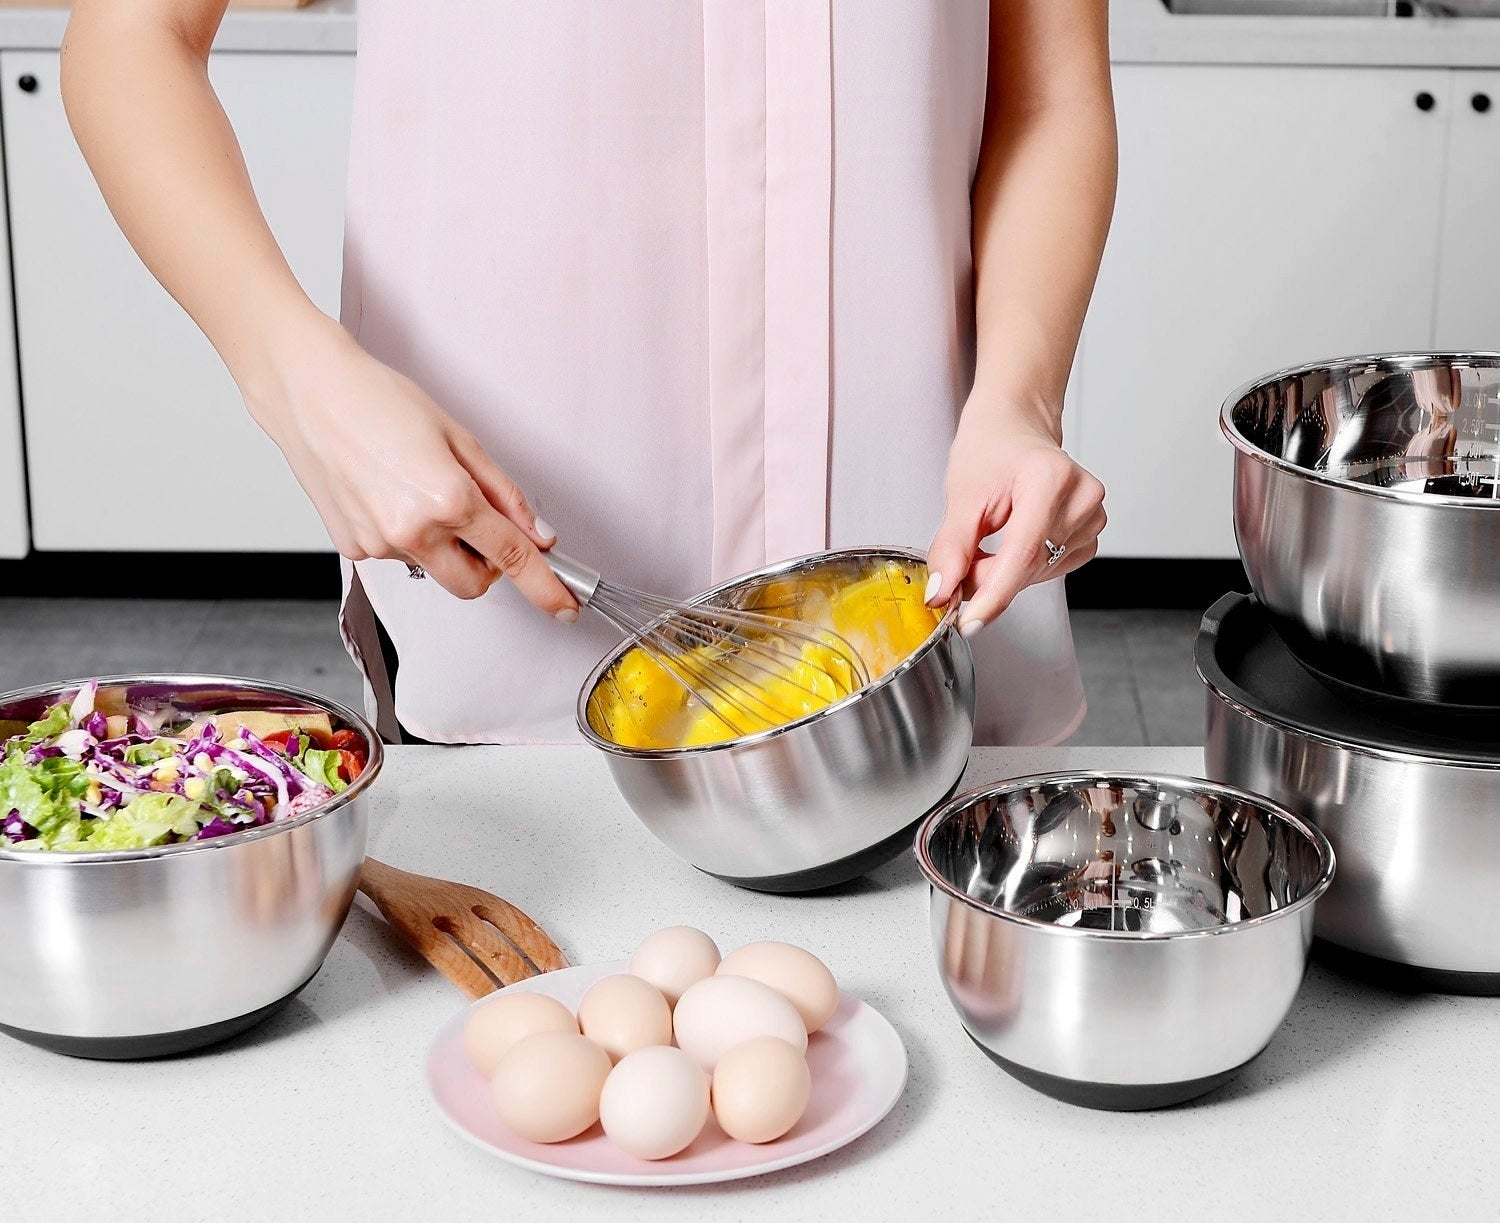 Model whisking eggs in a bowl, with ingredients in the other ones